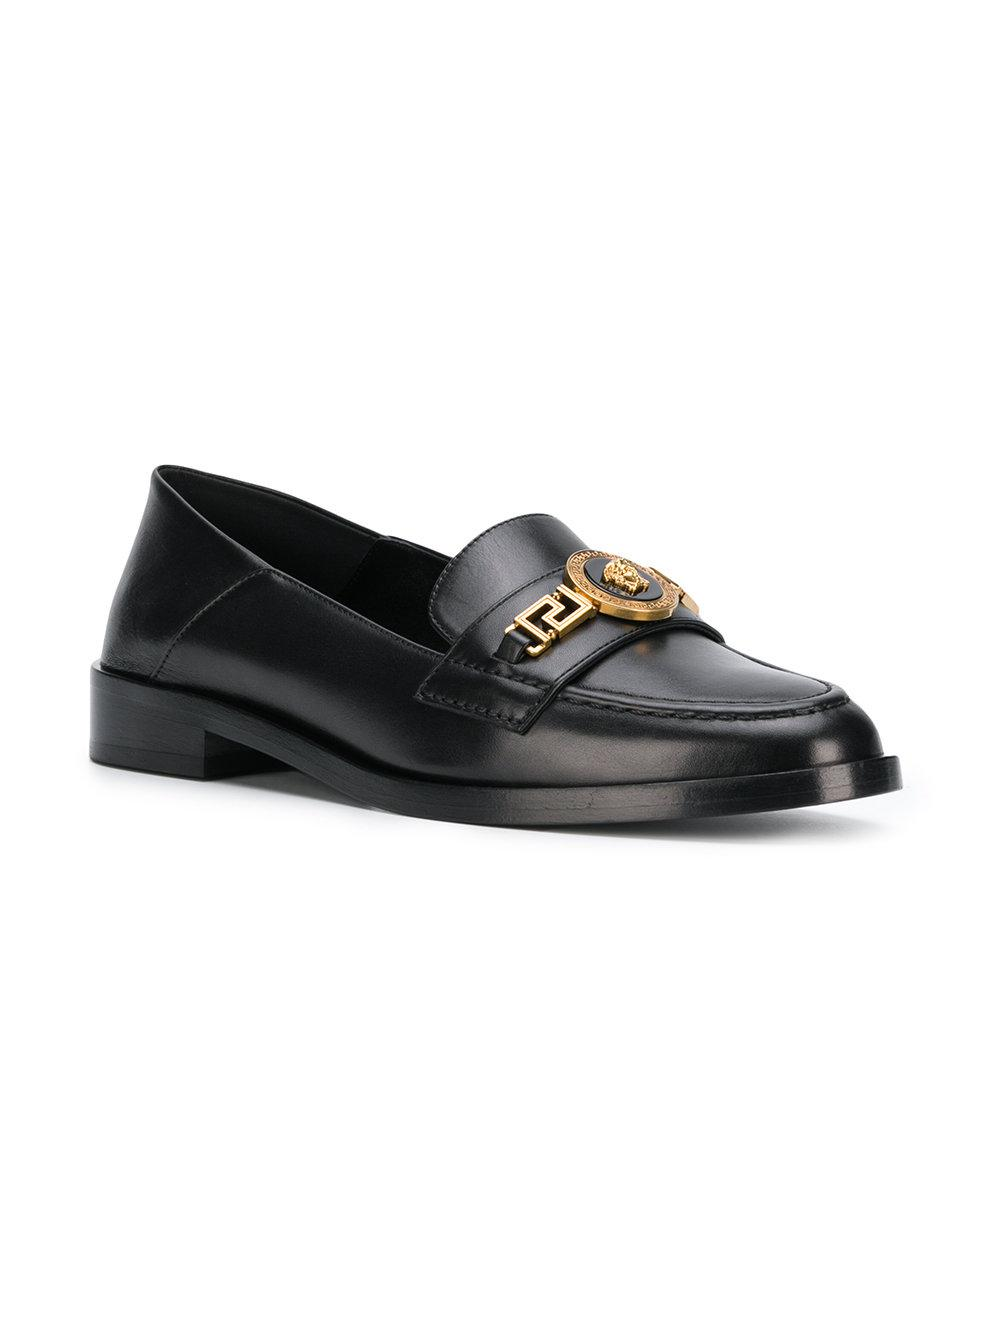 1430294ce087 Lyst - Versace Medusa Loafers in Black - Save 49%